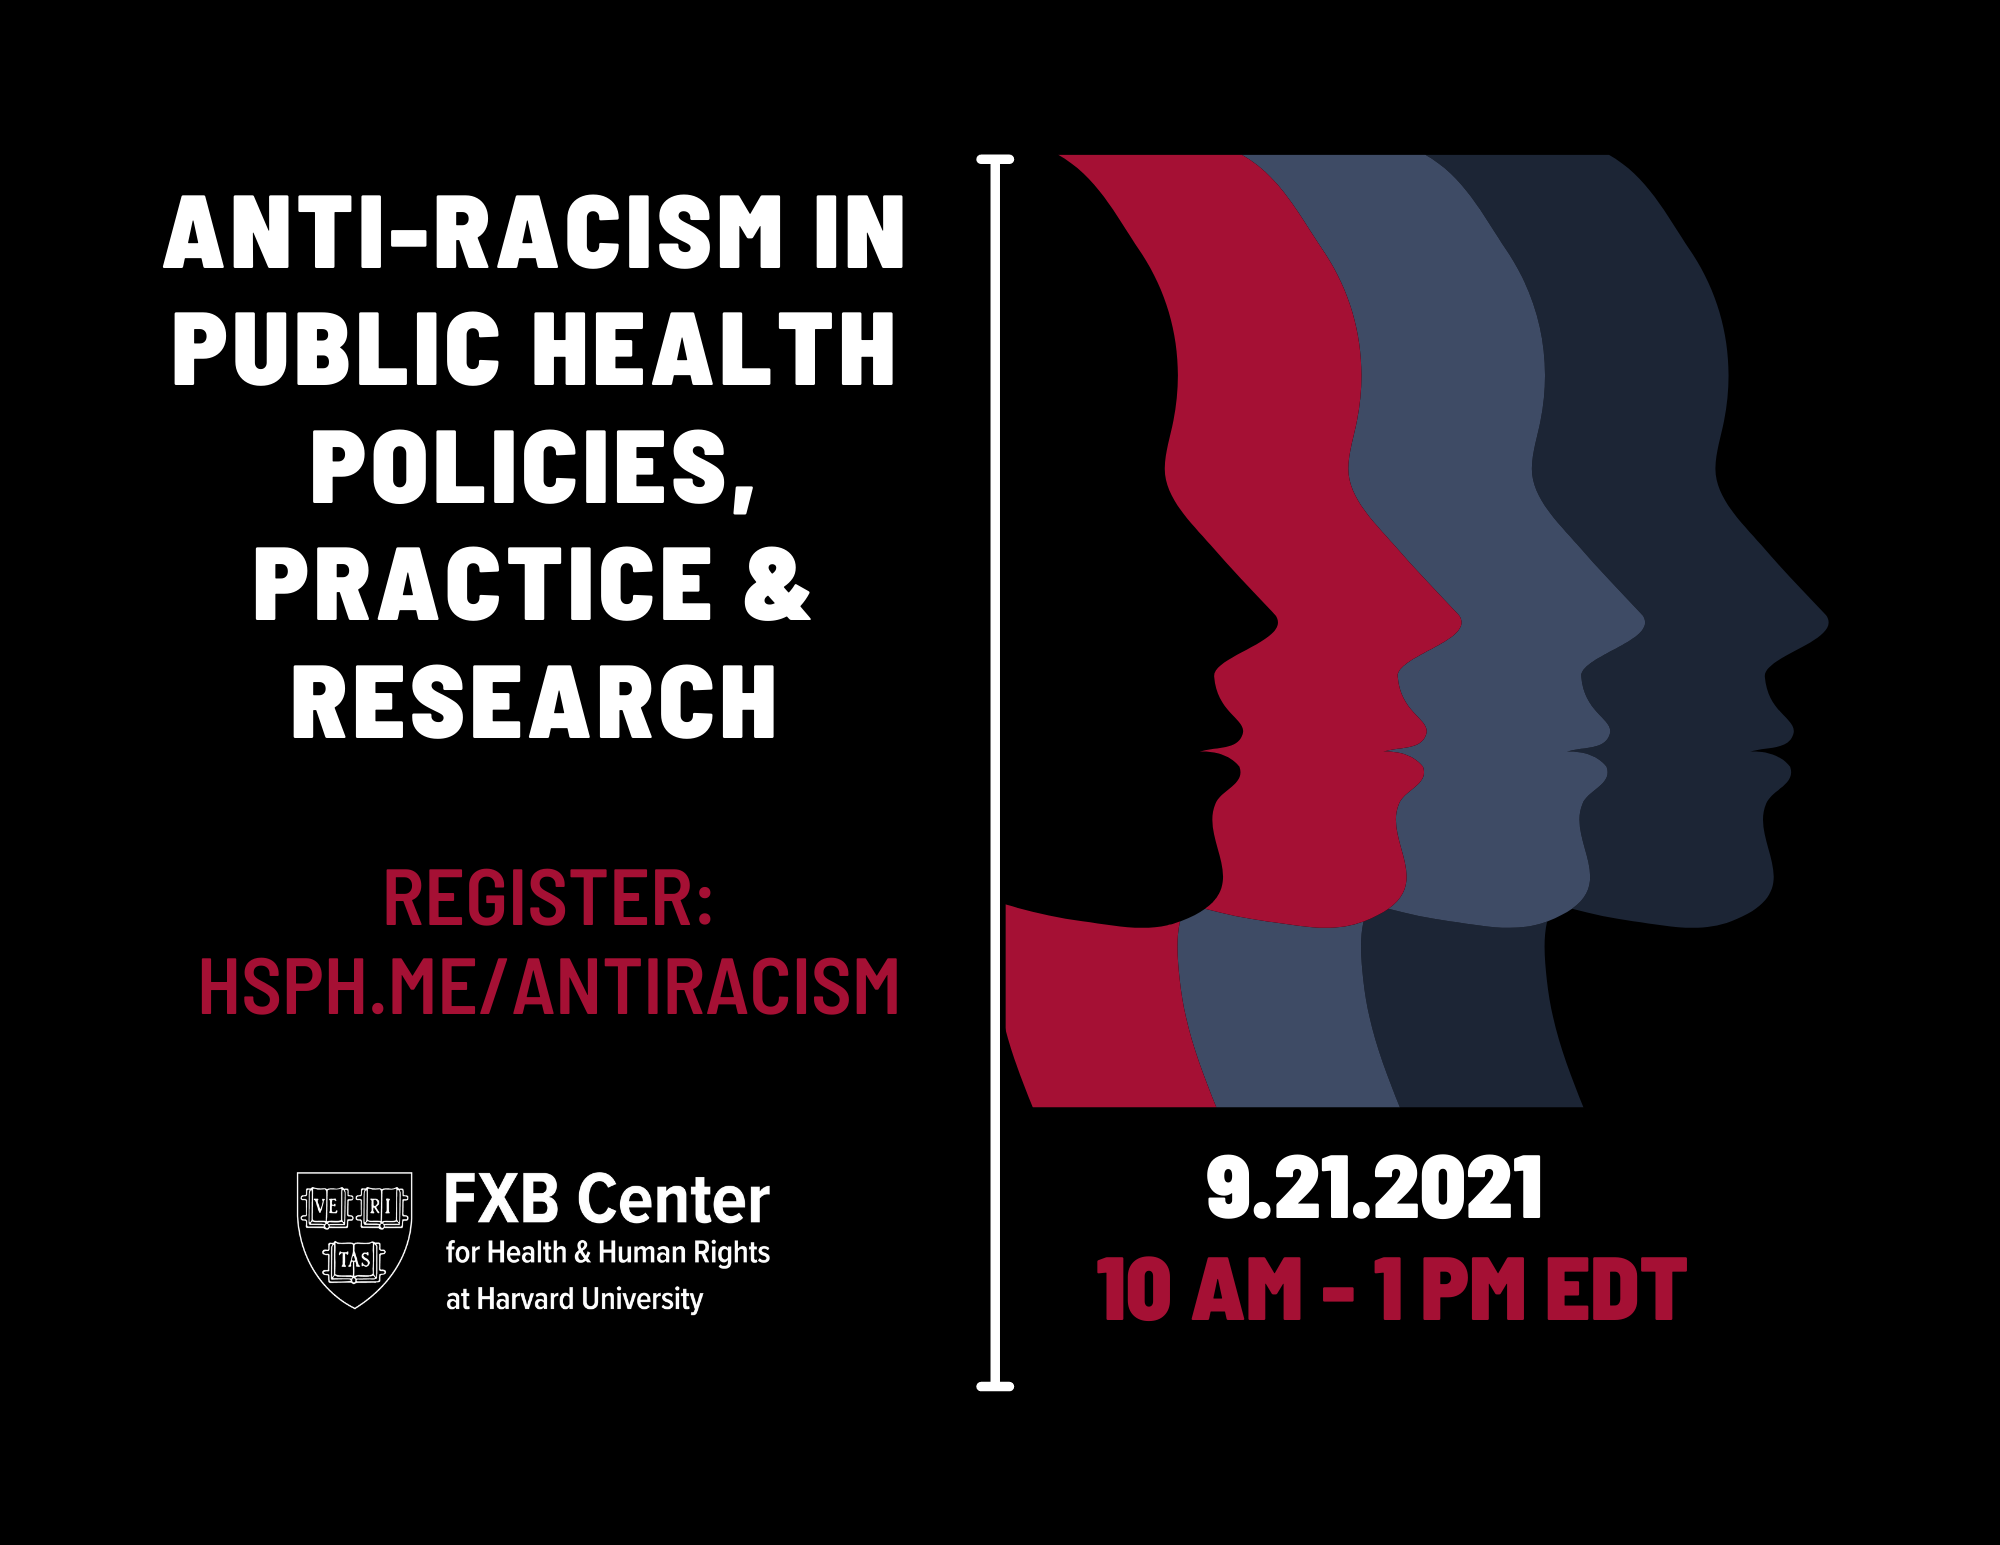 Anti-Racism in Public Health Policies, Practice, and Research